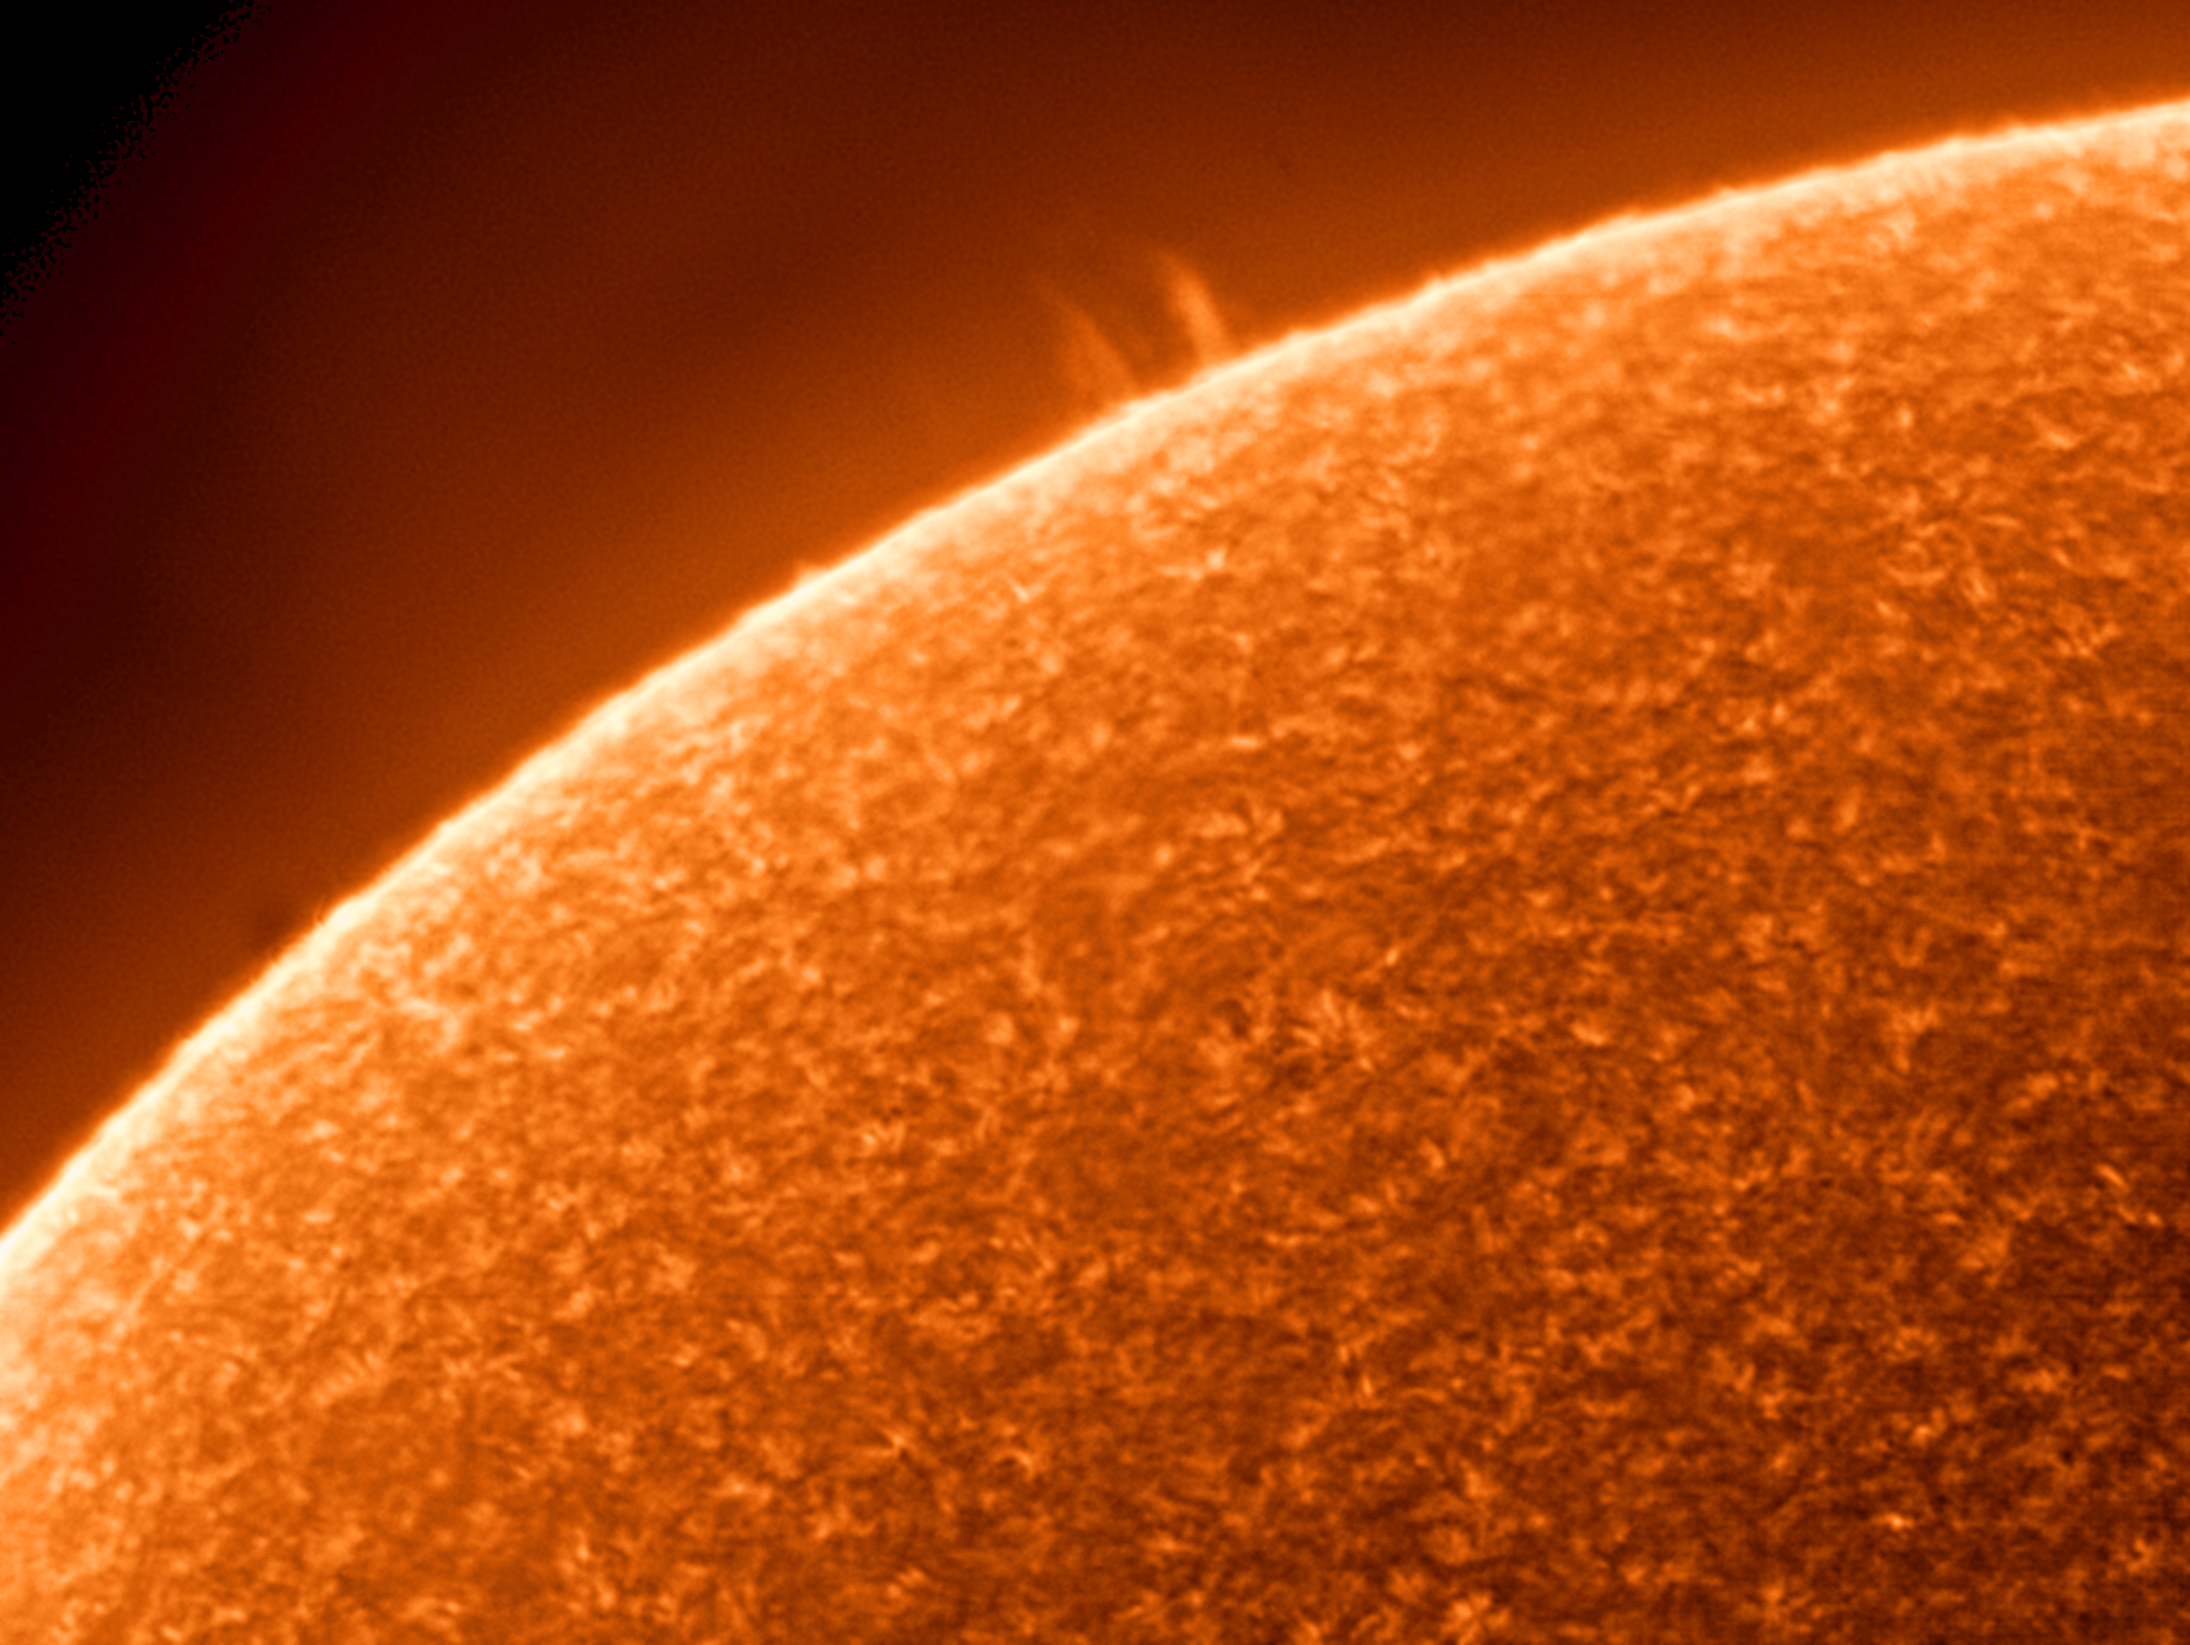 The Sun in H-alpha light